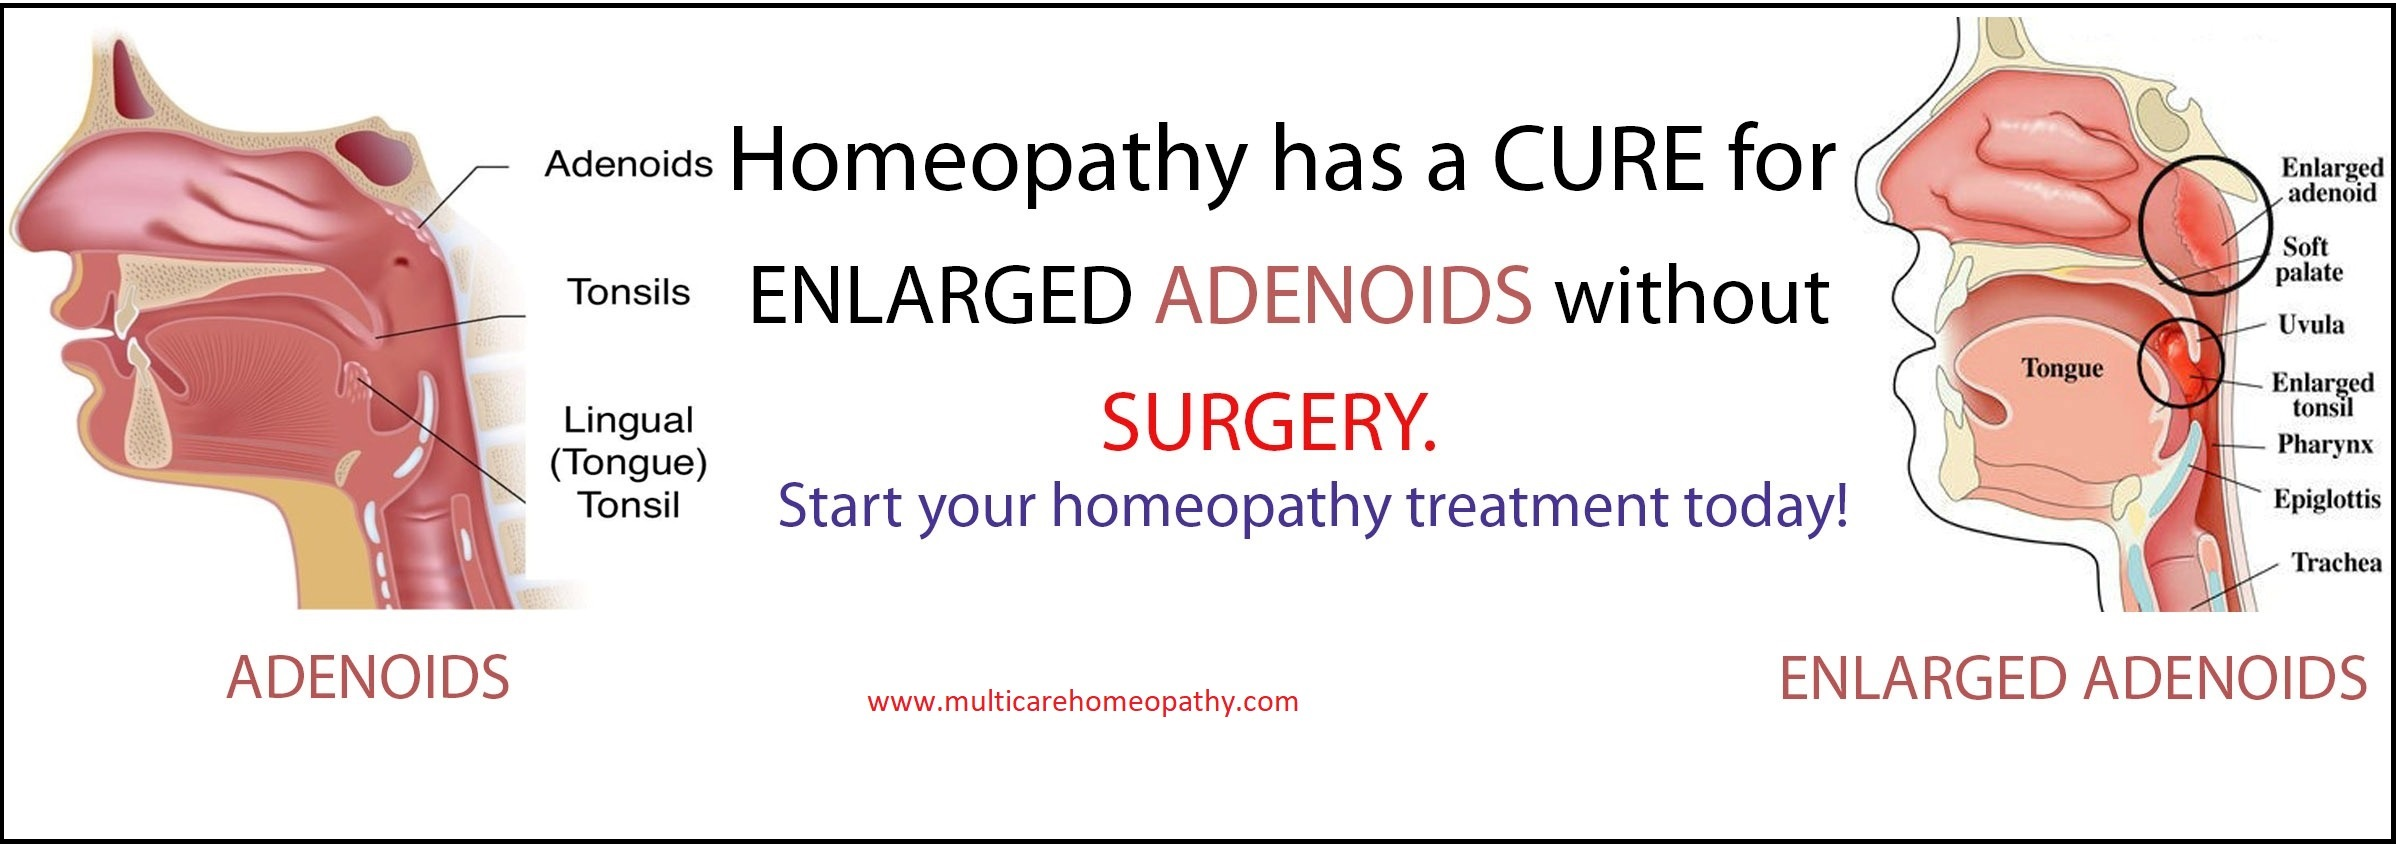 Homeopathic Medicines for ADENOIDS treatment